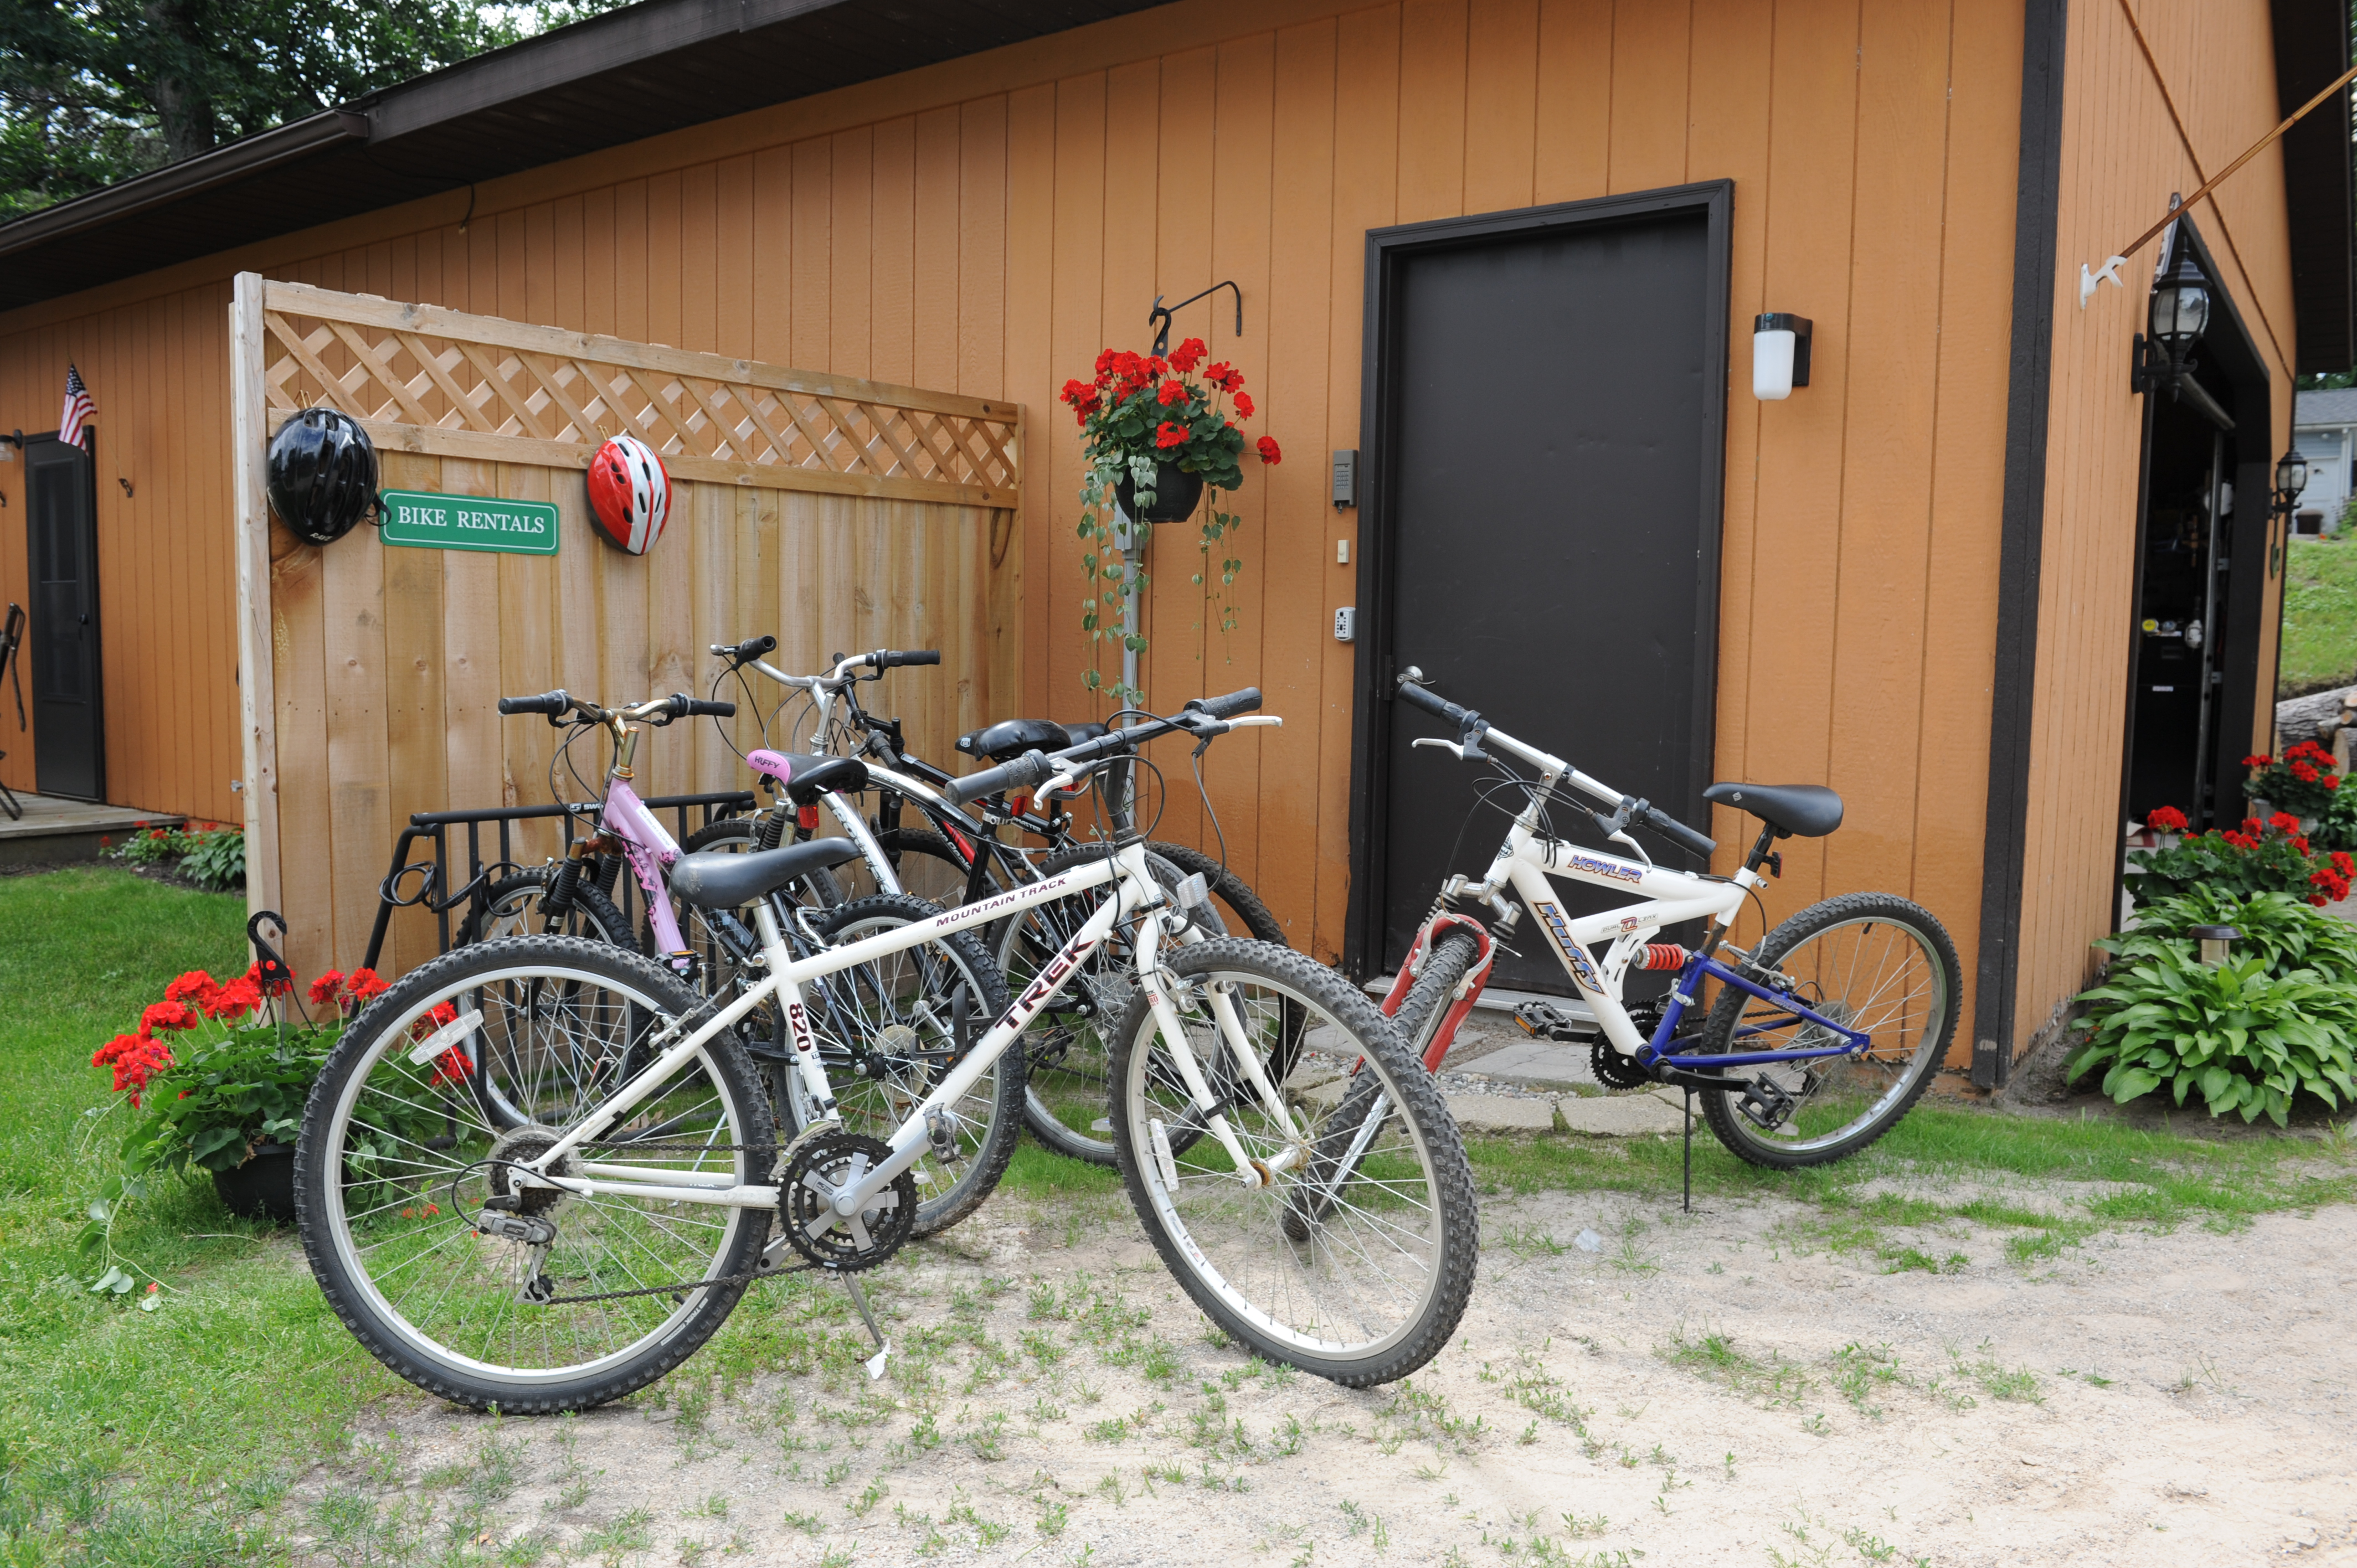 Northern Michigan Bike Rentals